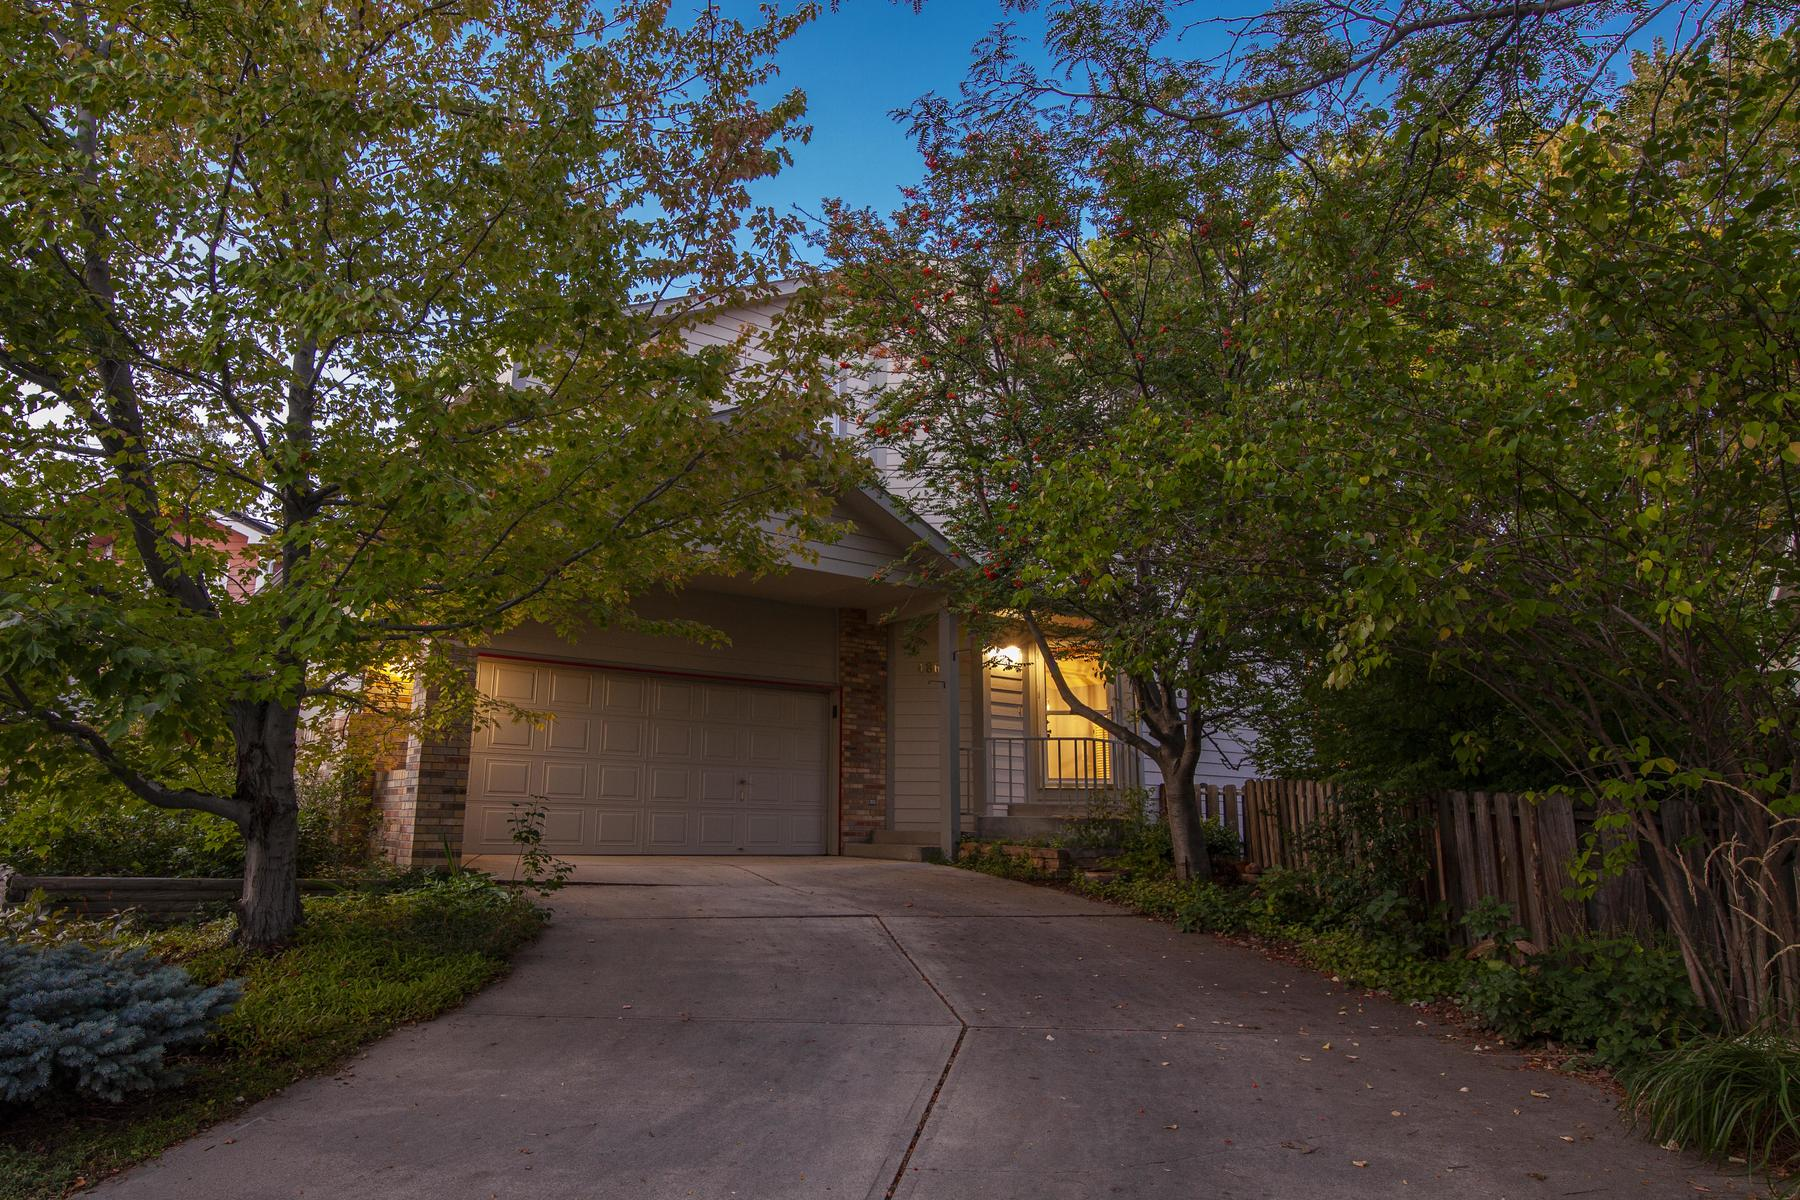 Single Family Homes for Active at Updated And Move In Ready With A Backyard Oasis 4863 Hopkins Pl Boulder, Colorado 80301 United States